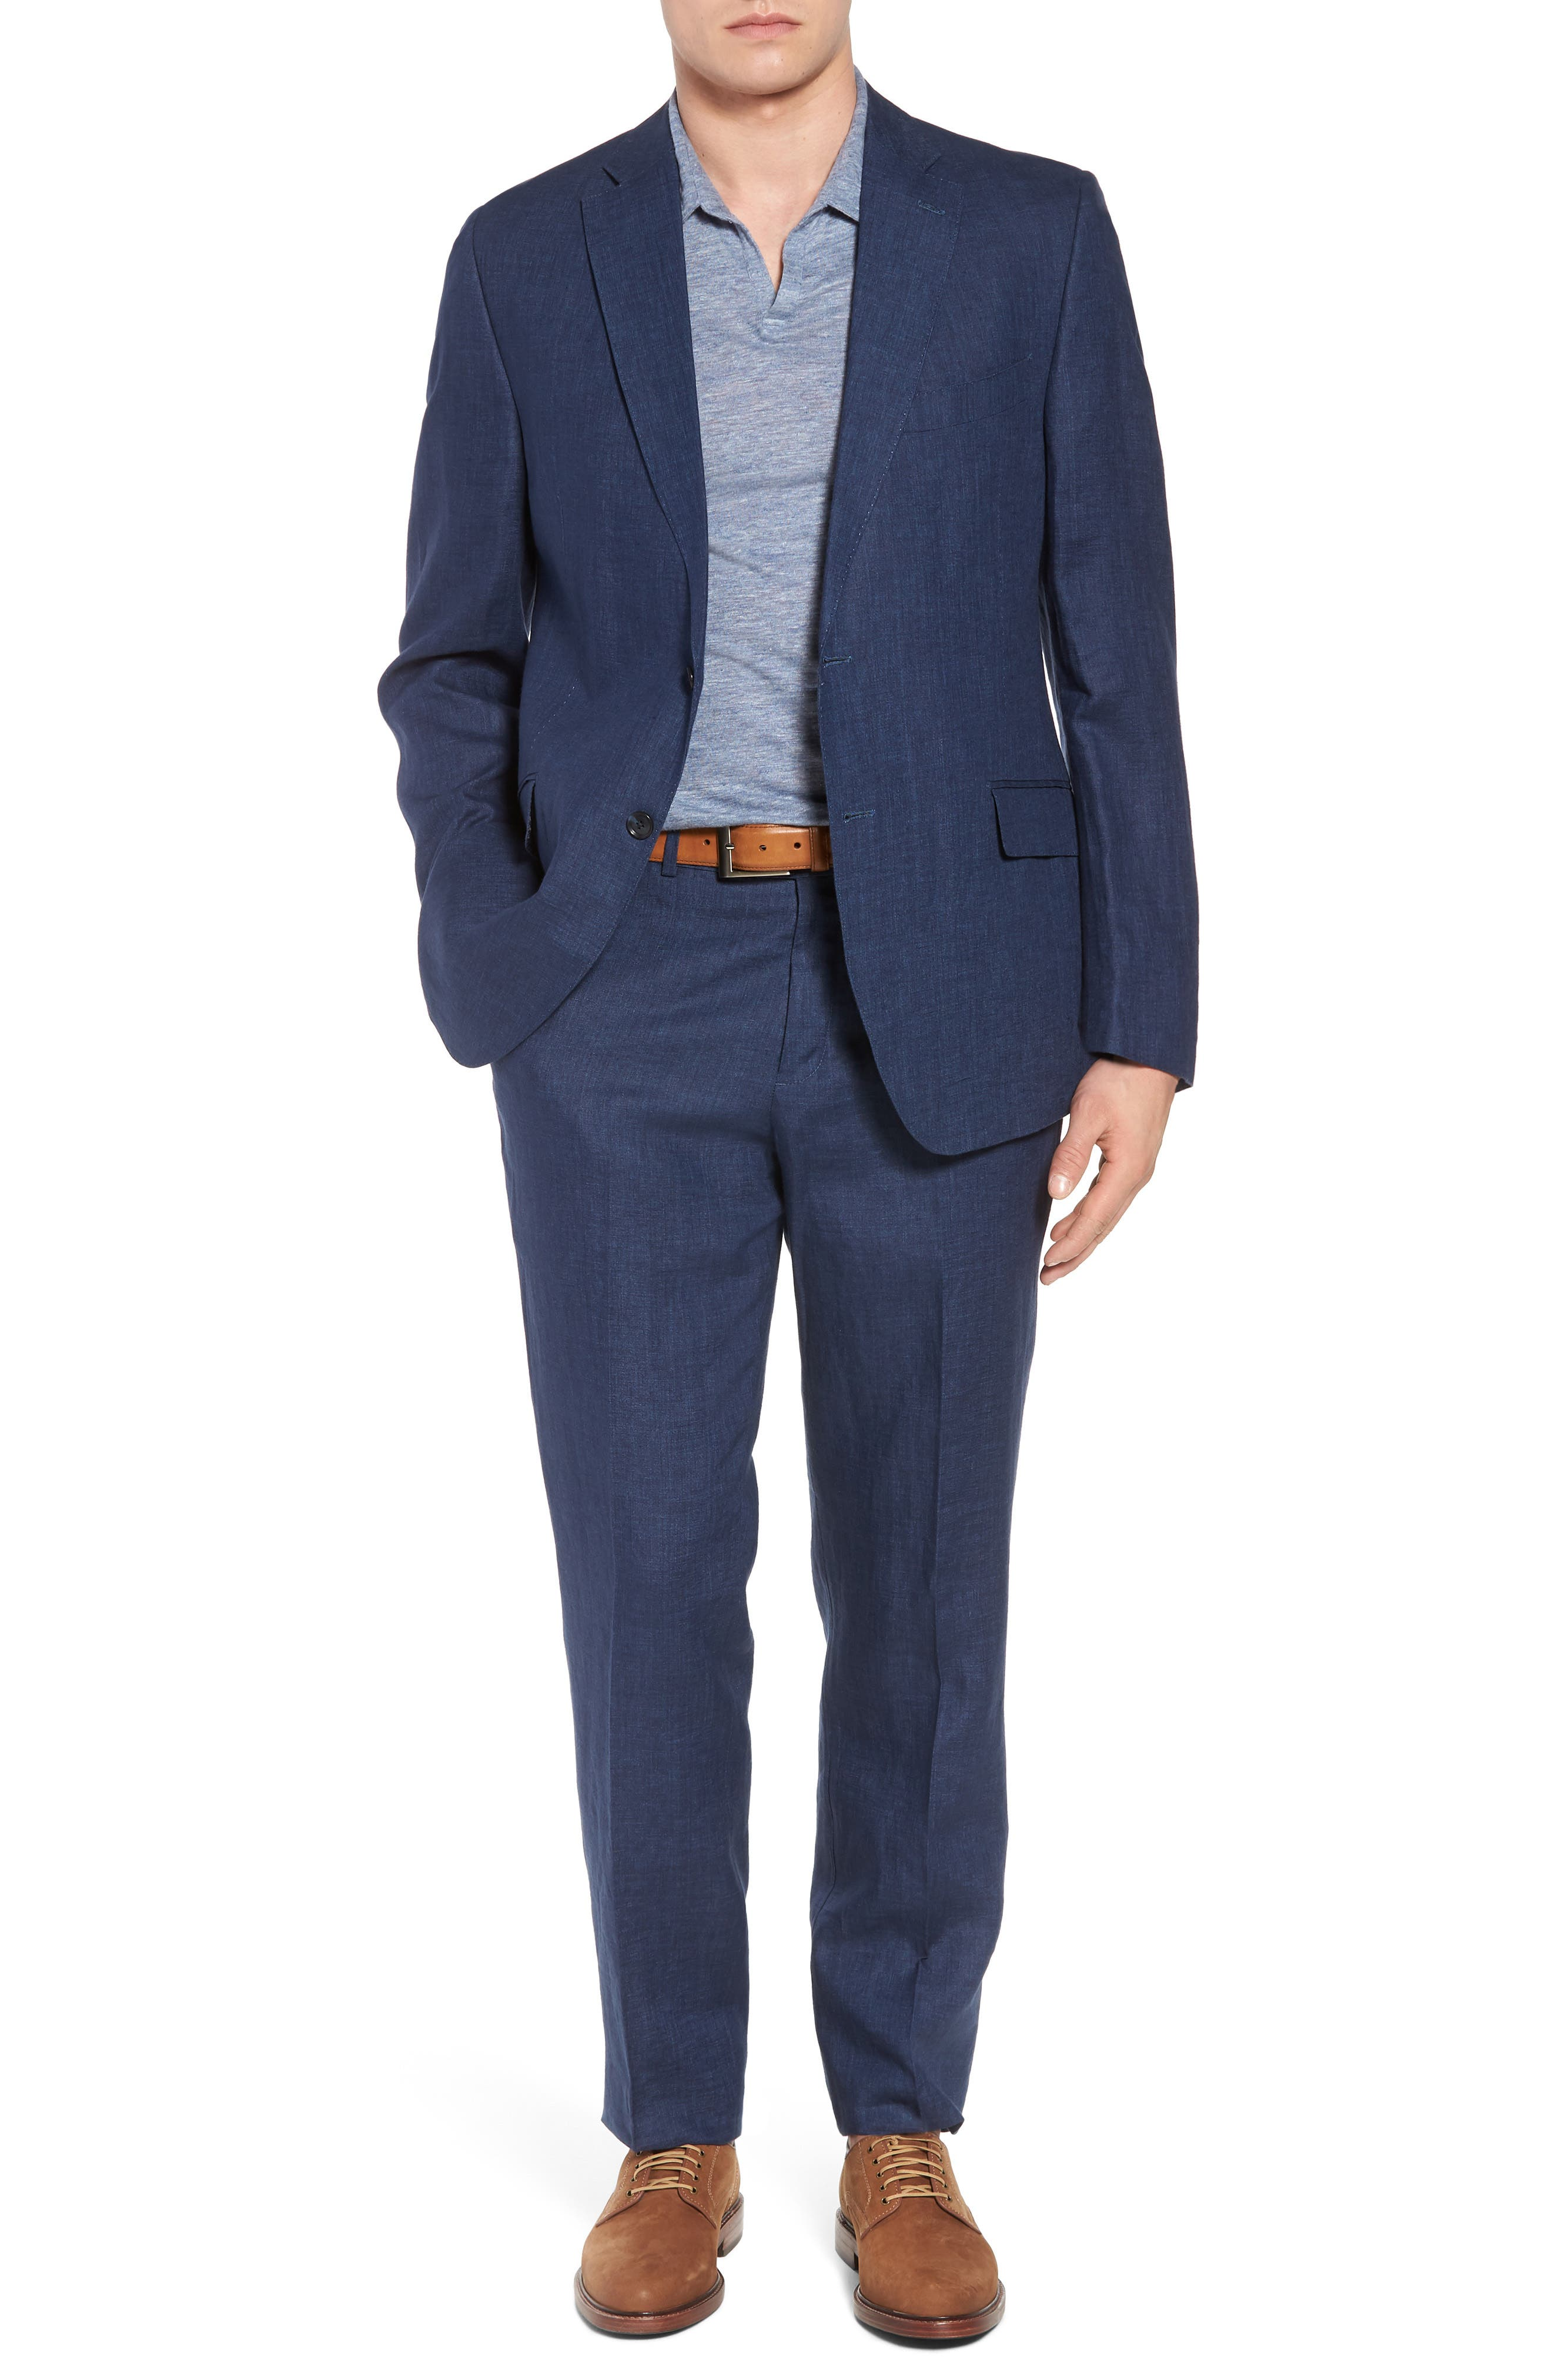 Andrew AIM Flat Front Linen Trousers,                             Alternate thumbnail 7, color,                             Navy